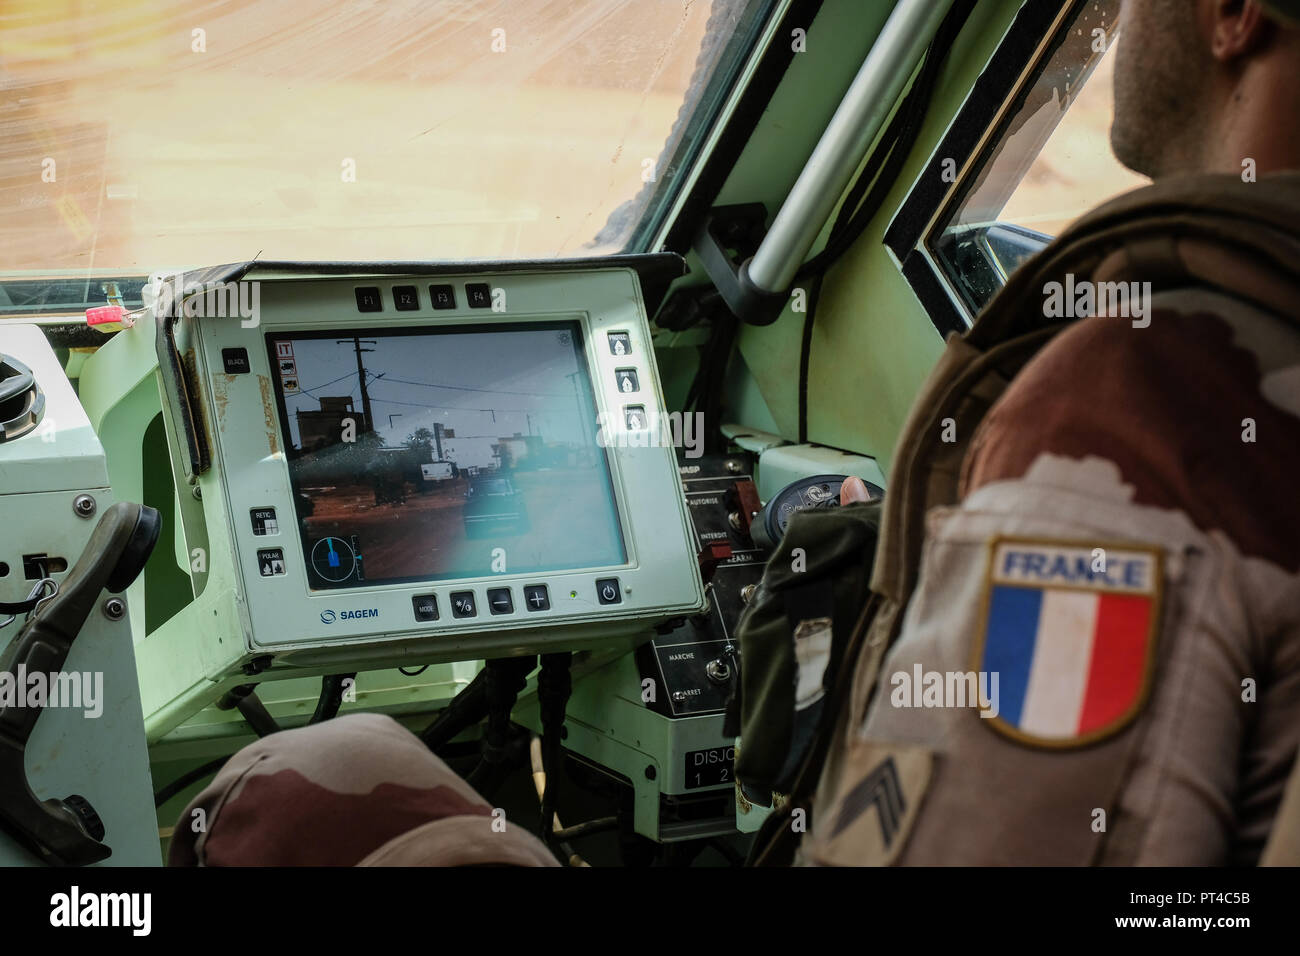 Gao's French base in Mali is the largest of the Barkhane external operation. It is from this base that the operations are launched against terrorist armed groups.. Gao - Mali - august 2018. La base française de Gao au Mali est la plus importante de l'opération extérieure Barkhane. C'est depuis cette emprise que les opérations sont lancées contre les groupes armés terroristes.. Gao - Mali - août 2018. - Stock Image